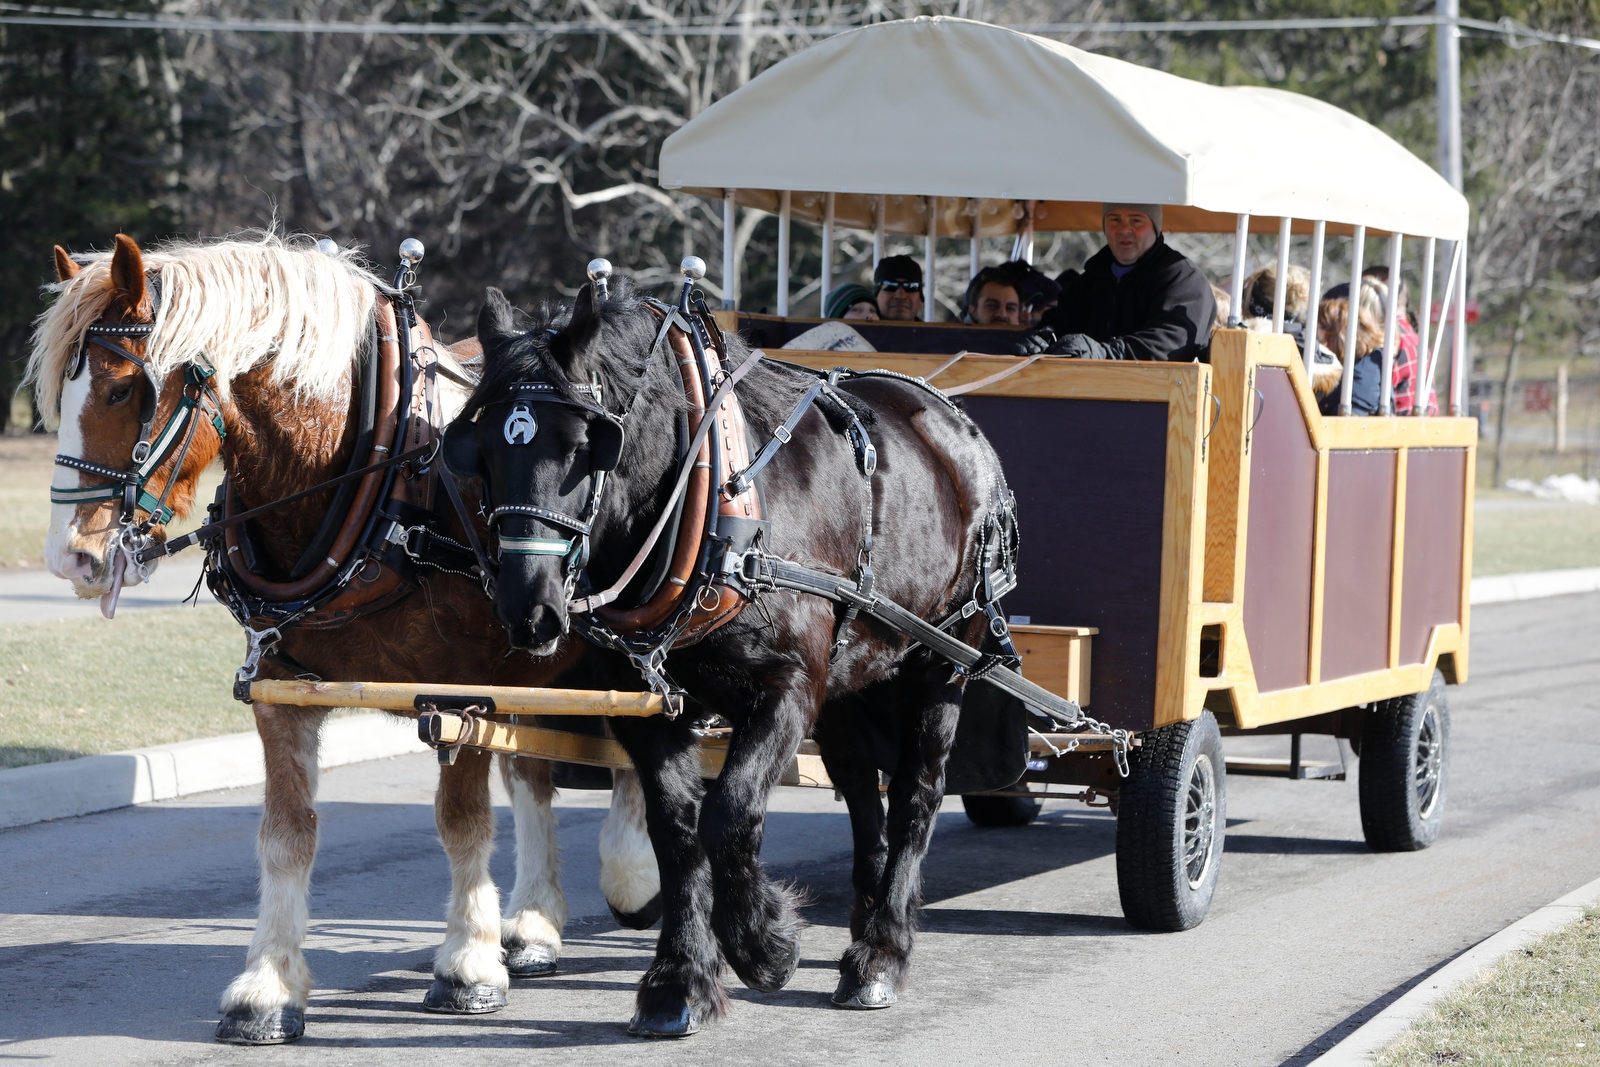 Todd Laing of TD Laing Draft Horses in Springville drives a wagon pulled by draft horses Prince, left, and Ike during Winterfest at Chestnut Ridge Park in Orchard Park, Sunday, Jan. 28, 2018.